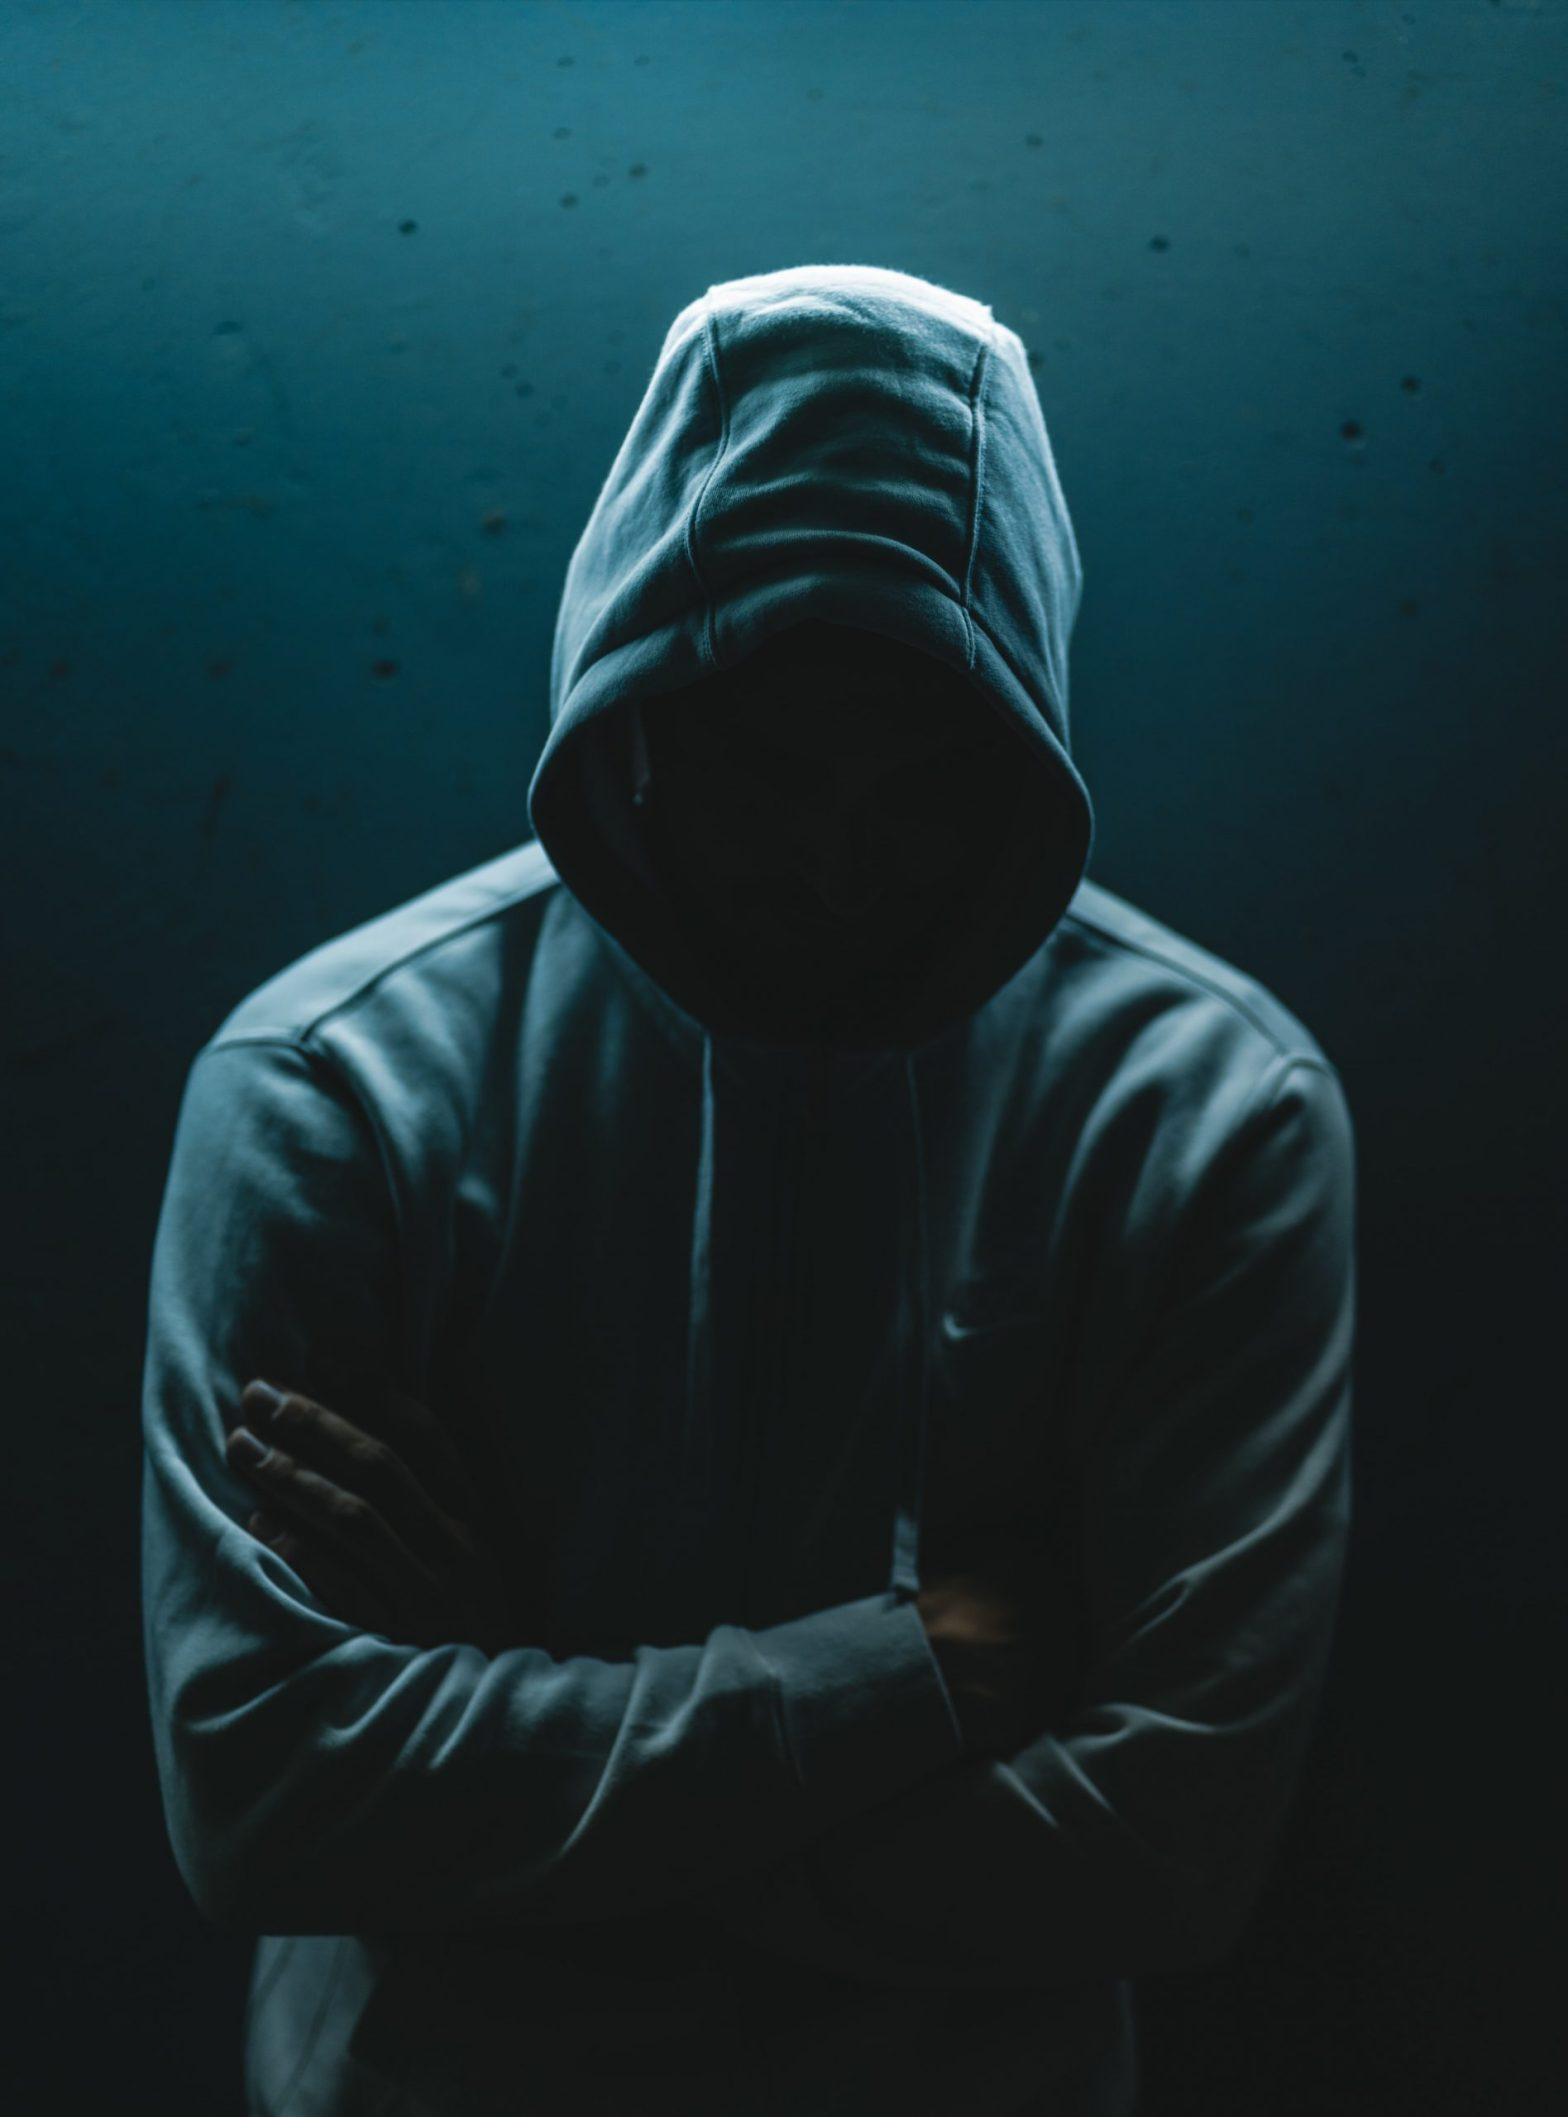 Man wearing hoodie so you can't see his face: De-selfed.